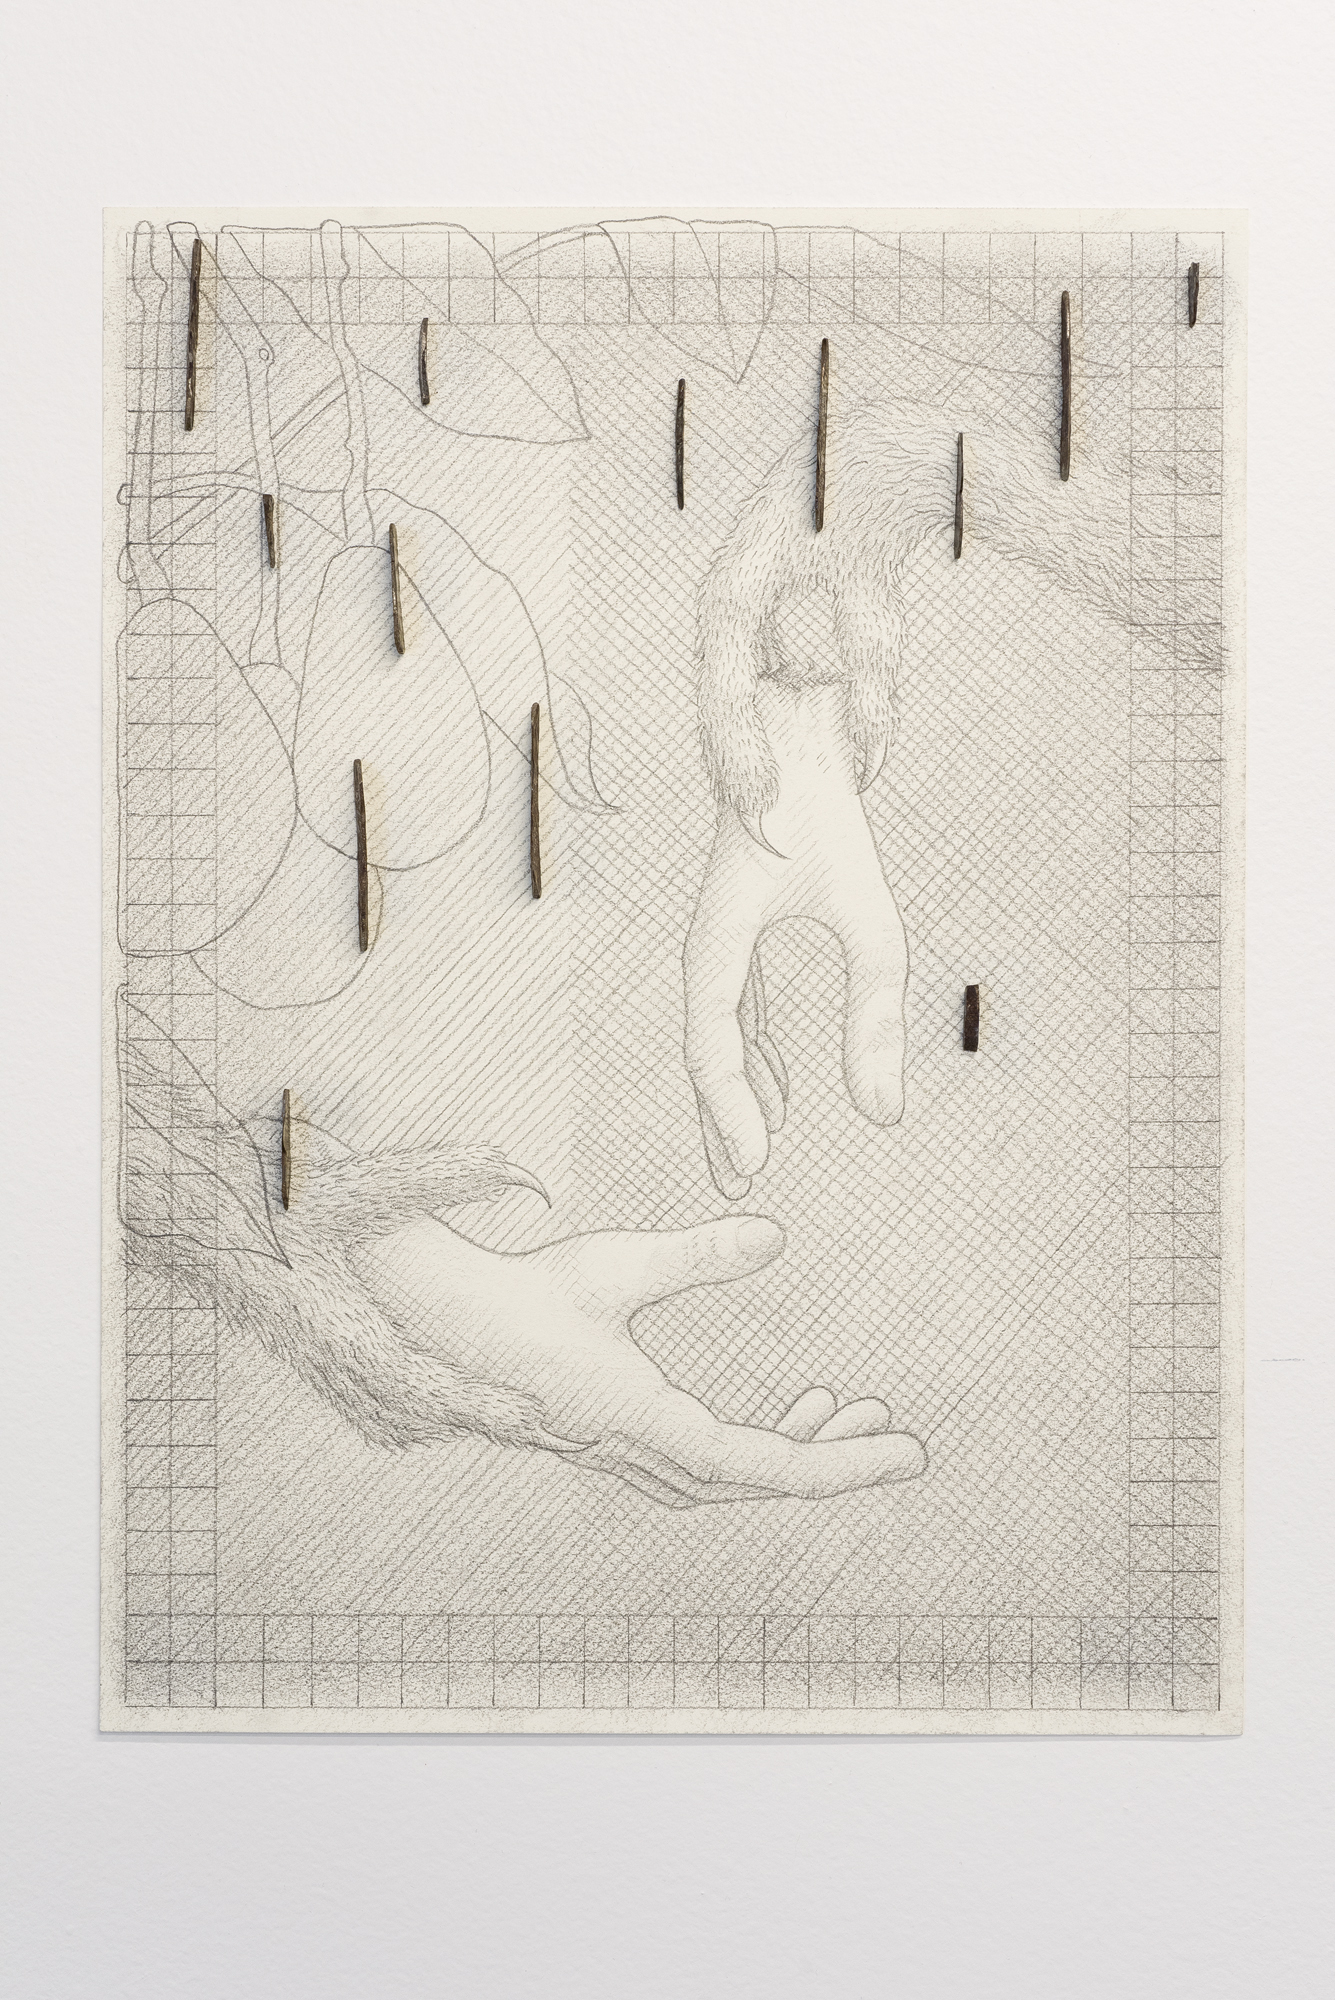 Jorge Satorre,  Sometimes I use images in my work that might be embarrassing to me, my family or my dealers,  2019. Pencil on paper, steel, magnets. Courtesy of the artist and Labor, Mexico; Photo: Preston/Kalogiros; Courtesy of The 500 Capp Street Foundation.